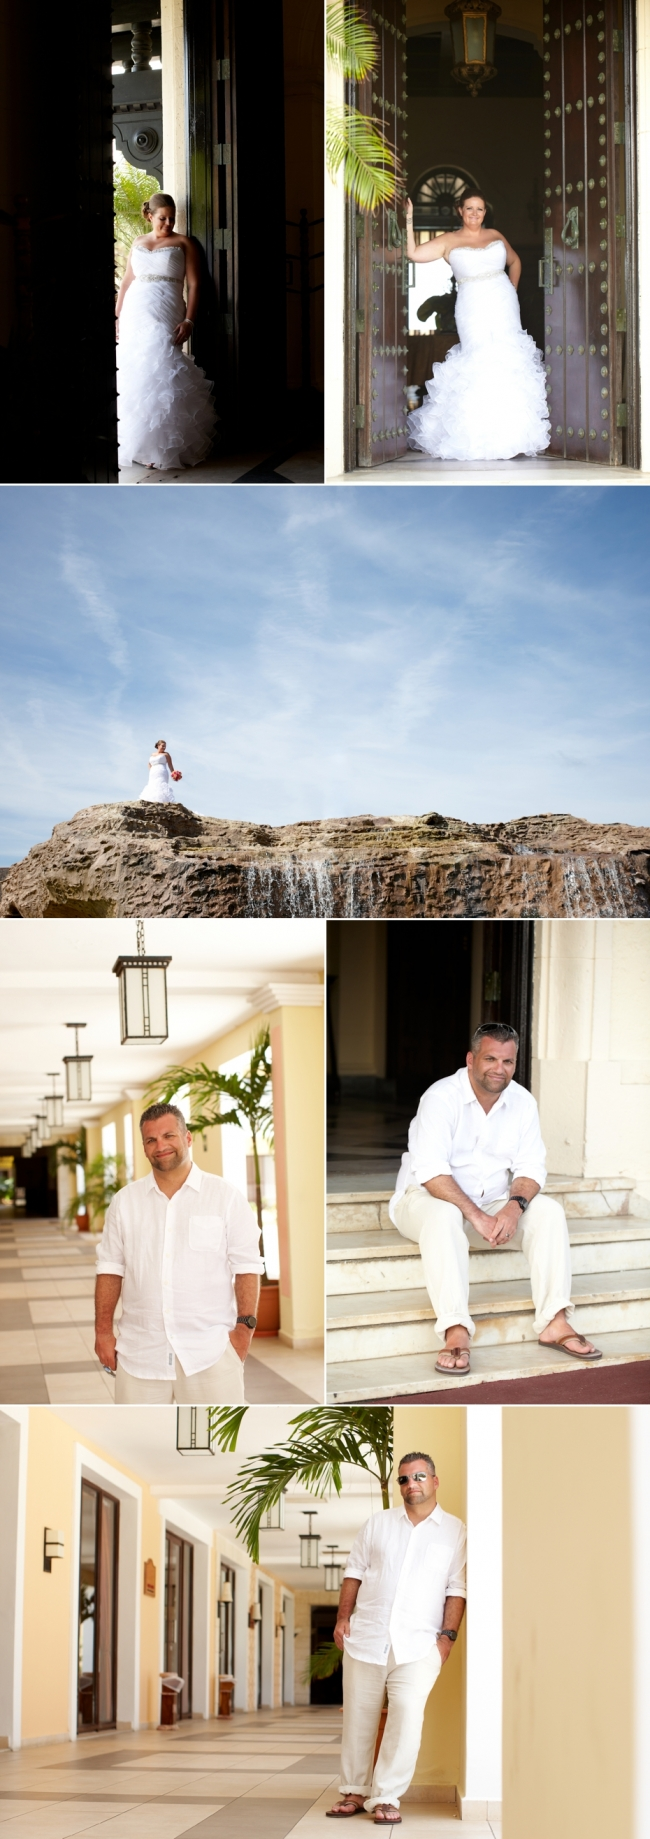 Destination Wedding_Destination Wedding Photos_Destination Wedding Photographer_ Destination Wedding Photography_ Cuba Wedding _ Cuba Wedding Photos_002